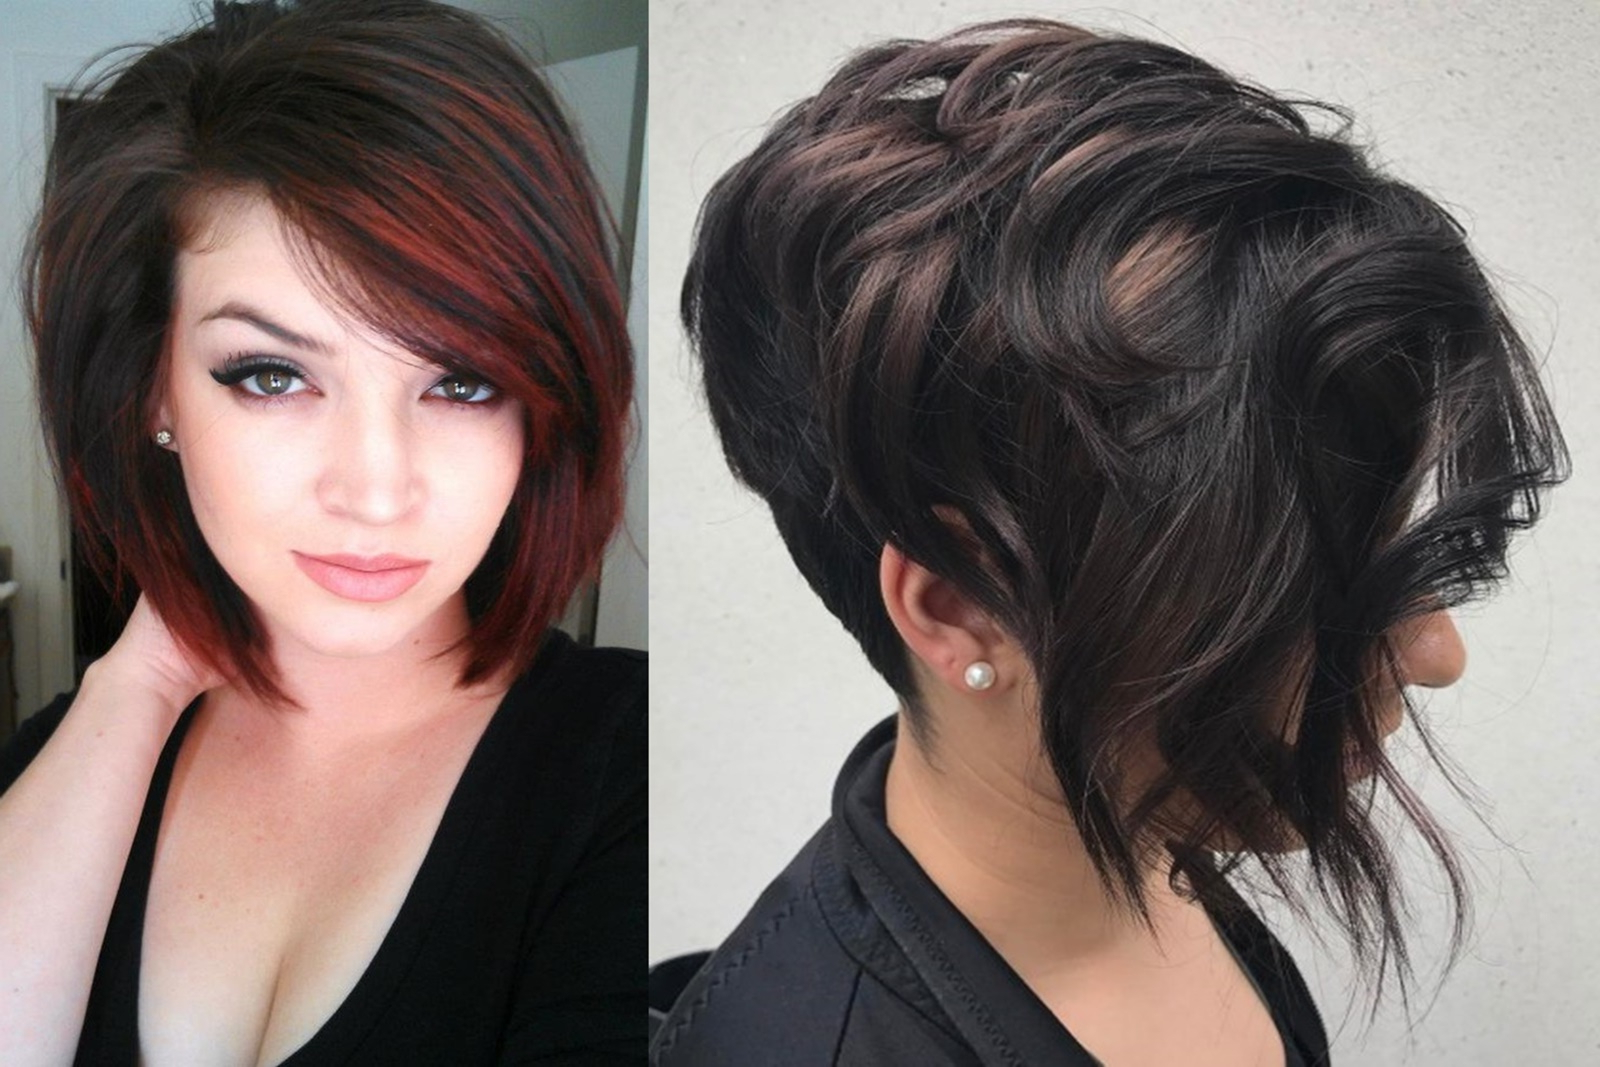 Trendy Short Haircuts For Fine Hair | Hairstyles & Hair Color For For Trendy Short Hairstyles For Thin Hair (View 3 of 25)